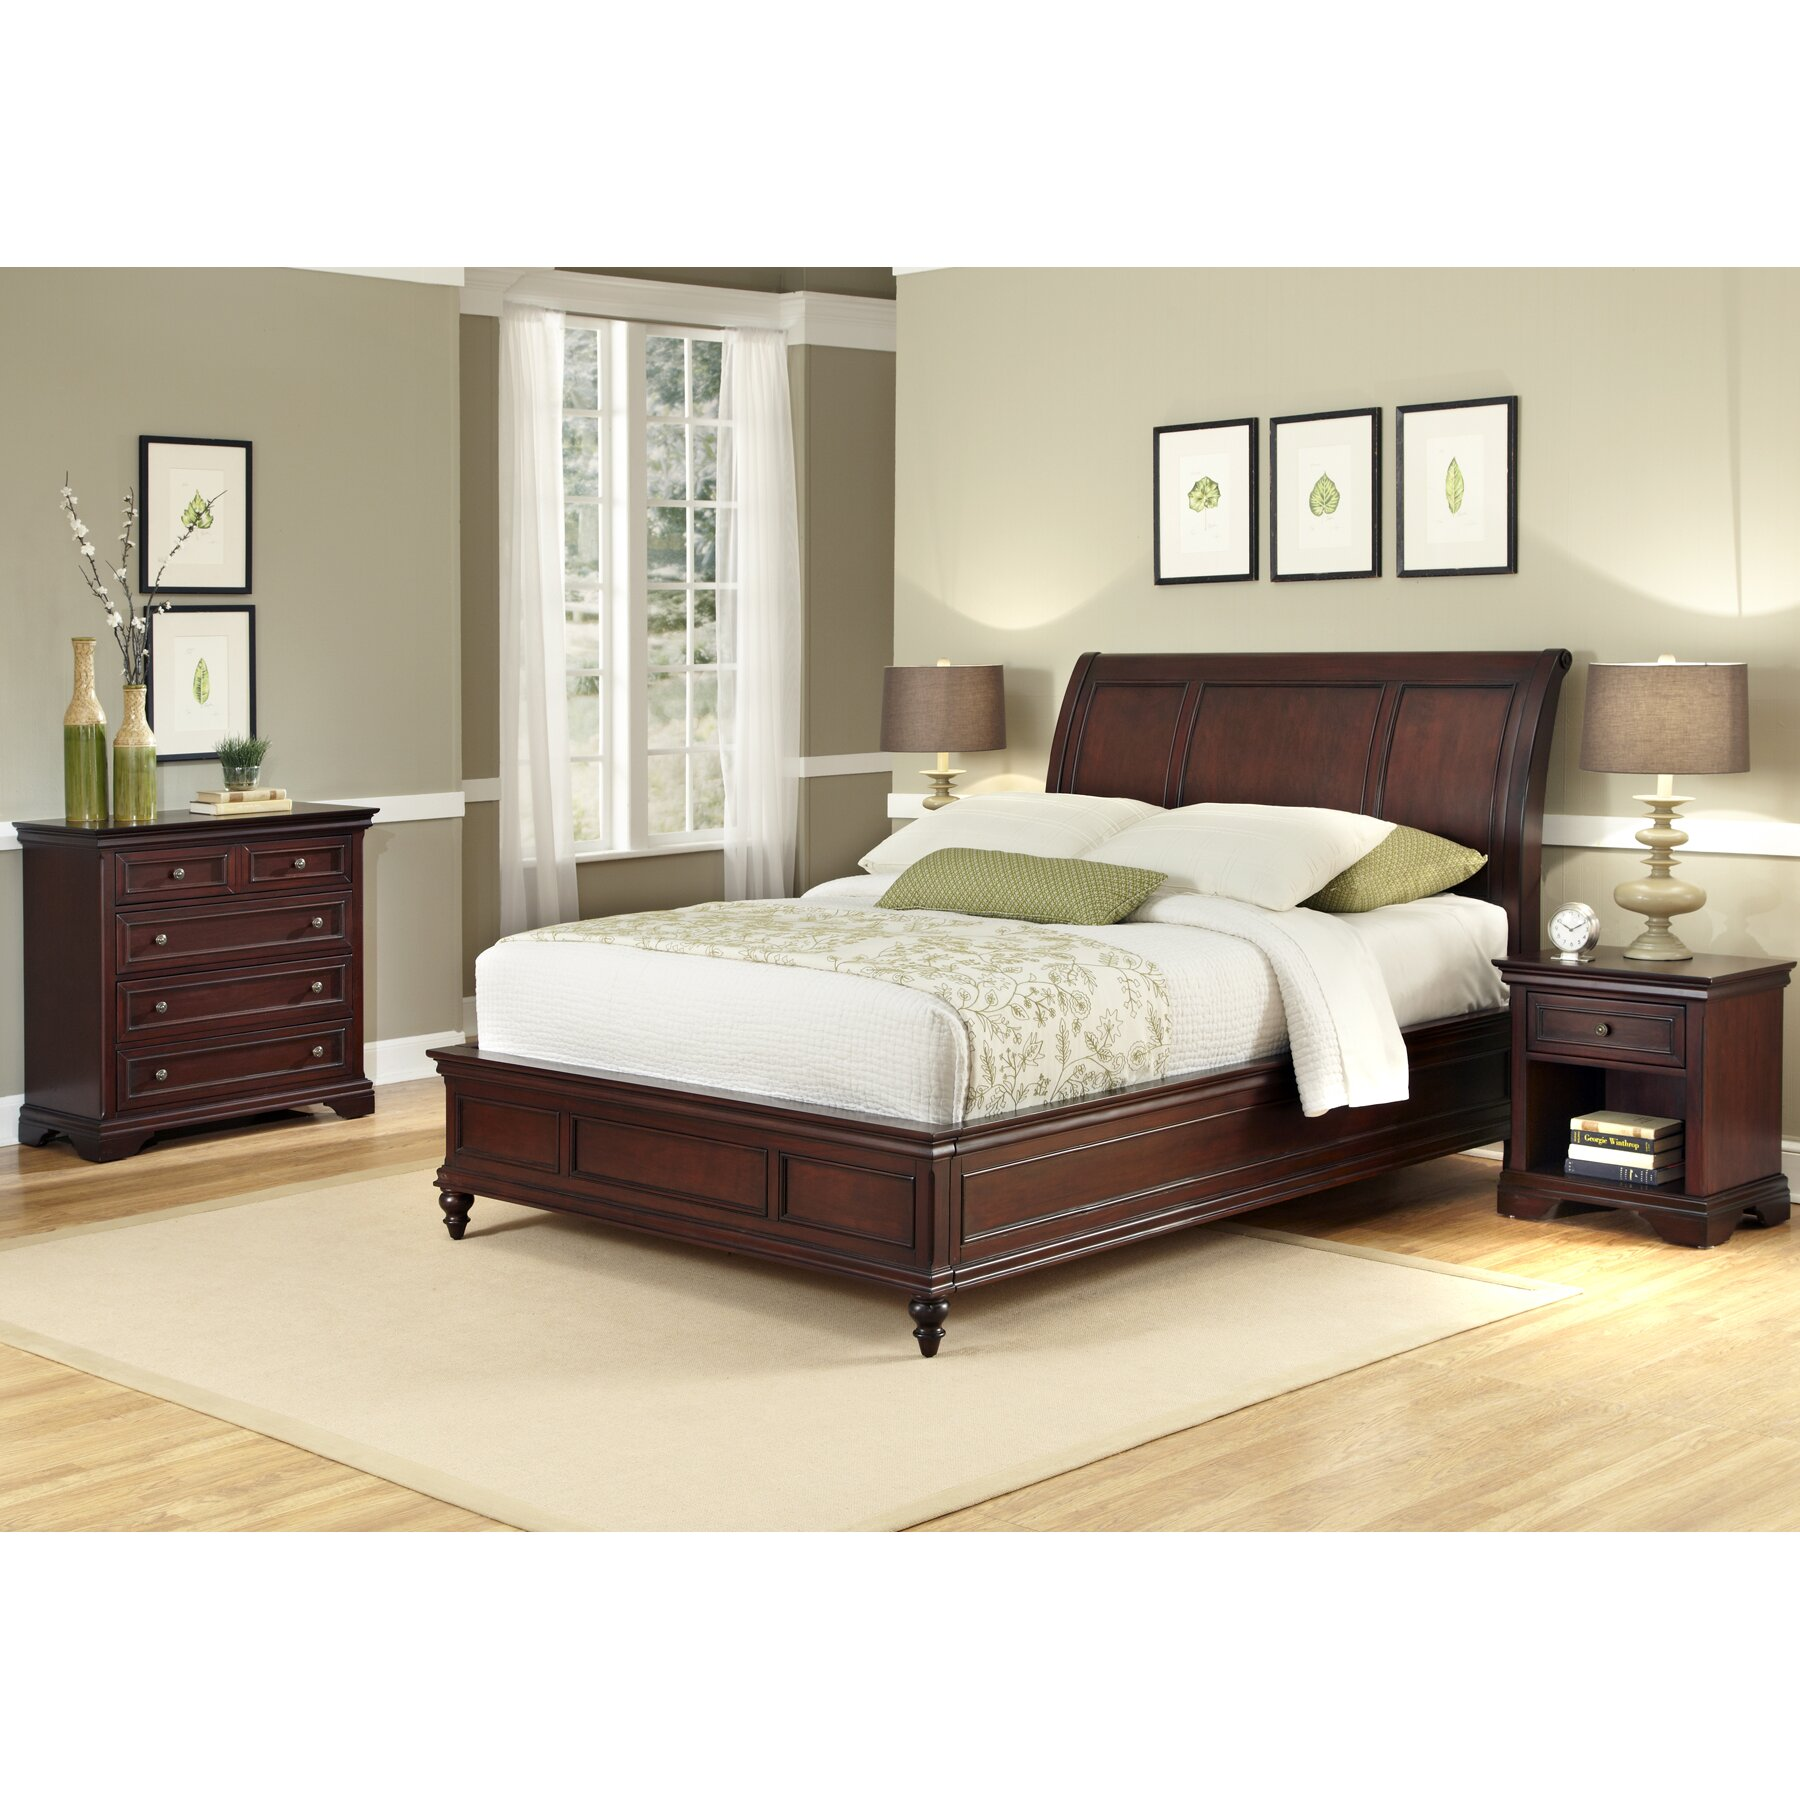 Lafayette platform 3 piece bedroom set wayfair for Bedroom 3 piece sets